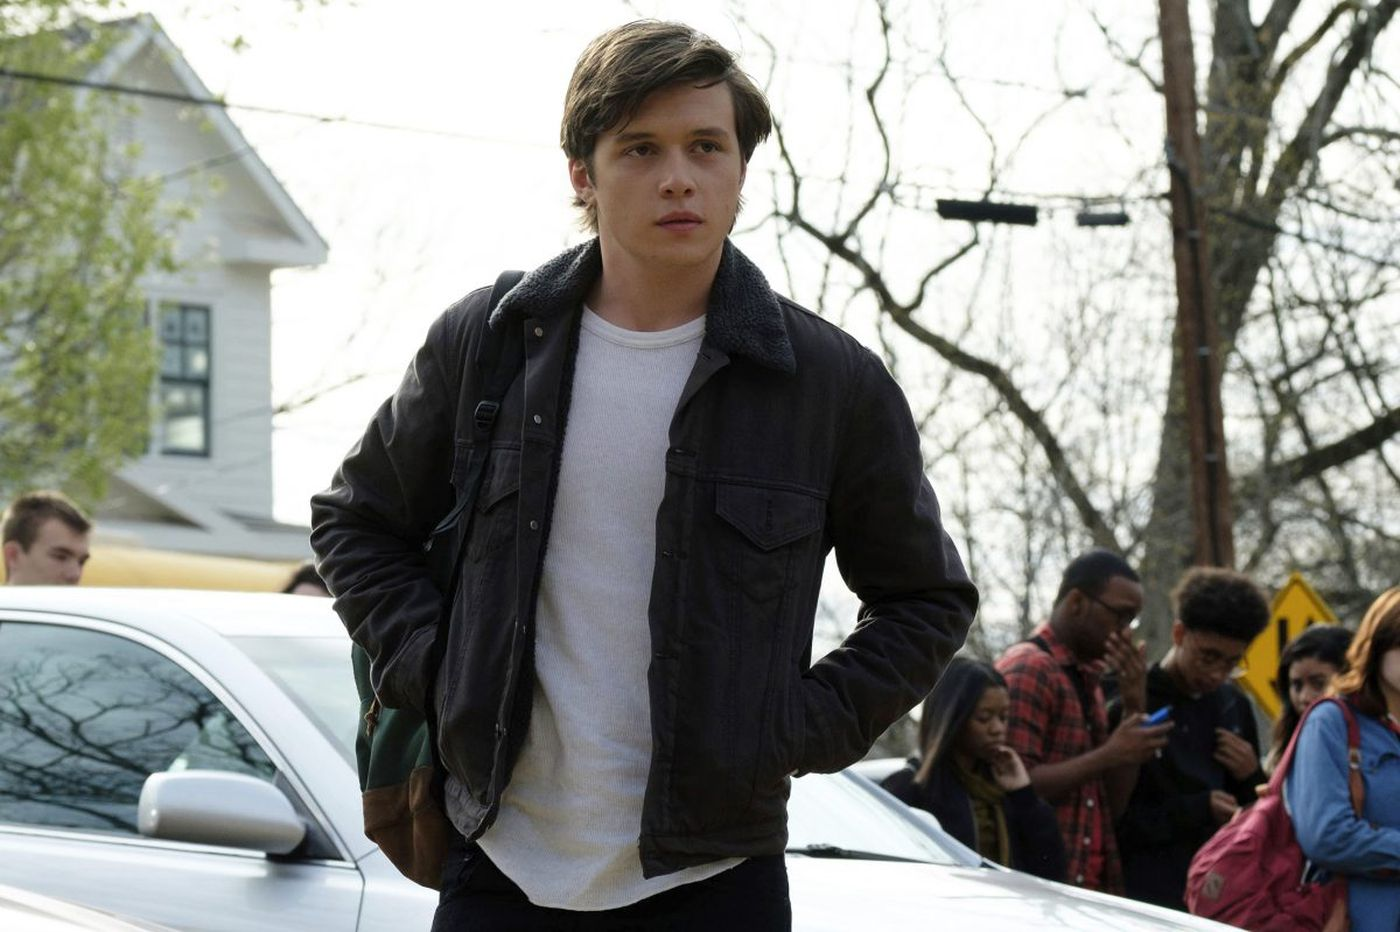 'Love, Simon': A teen's coming out story. Too bad he's so bland